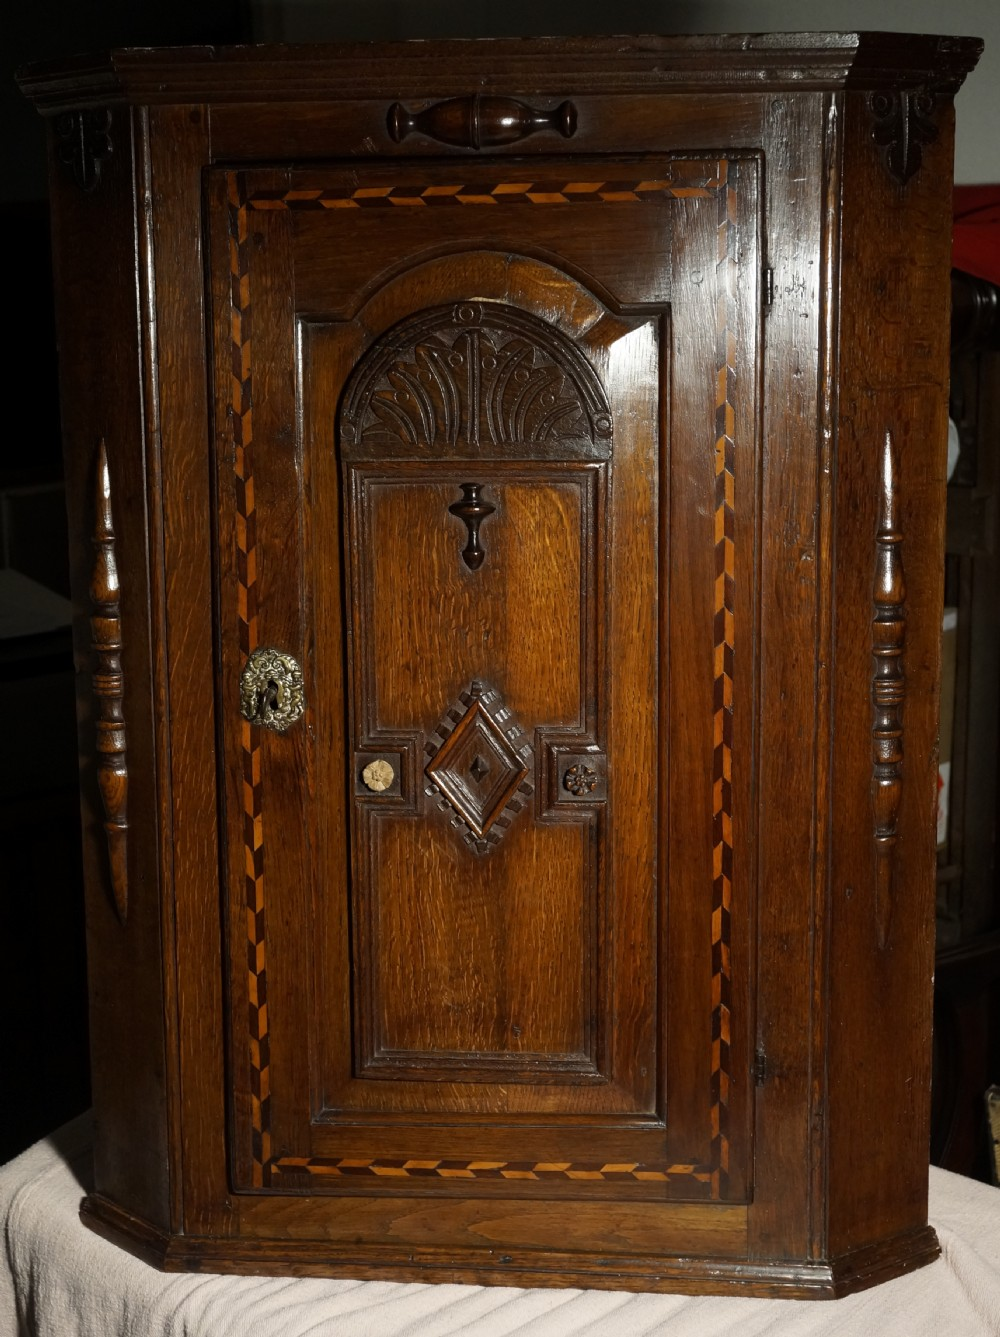 oak inlaid corner cupboard with unsual door and inner decoration circa 1720s